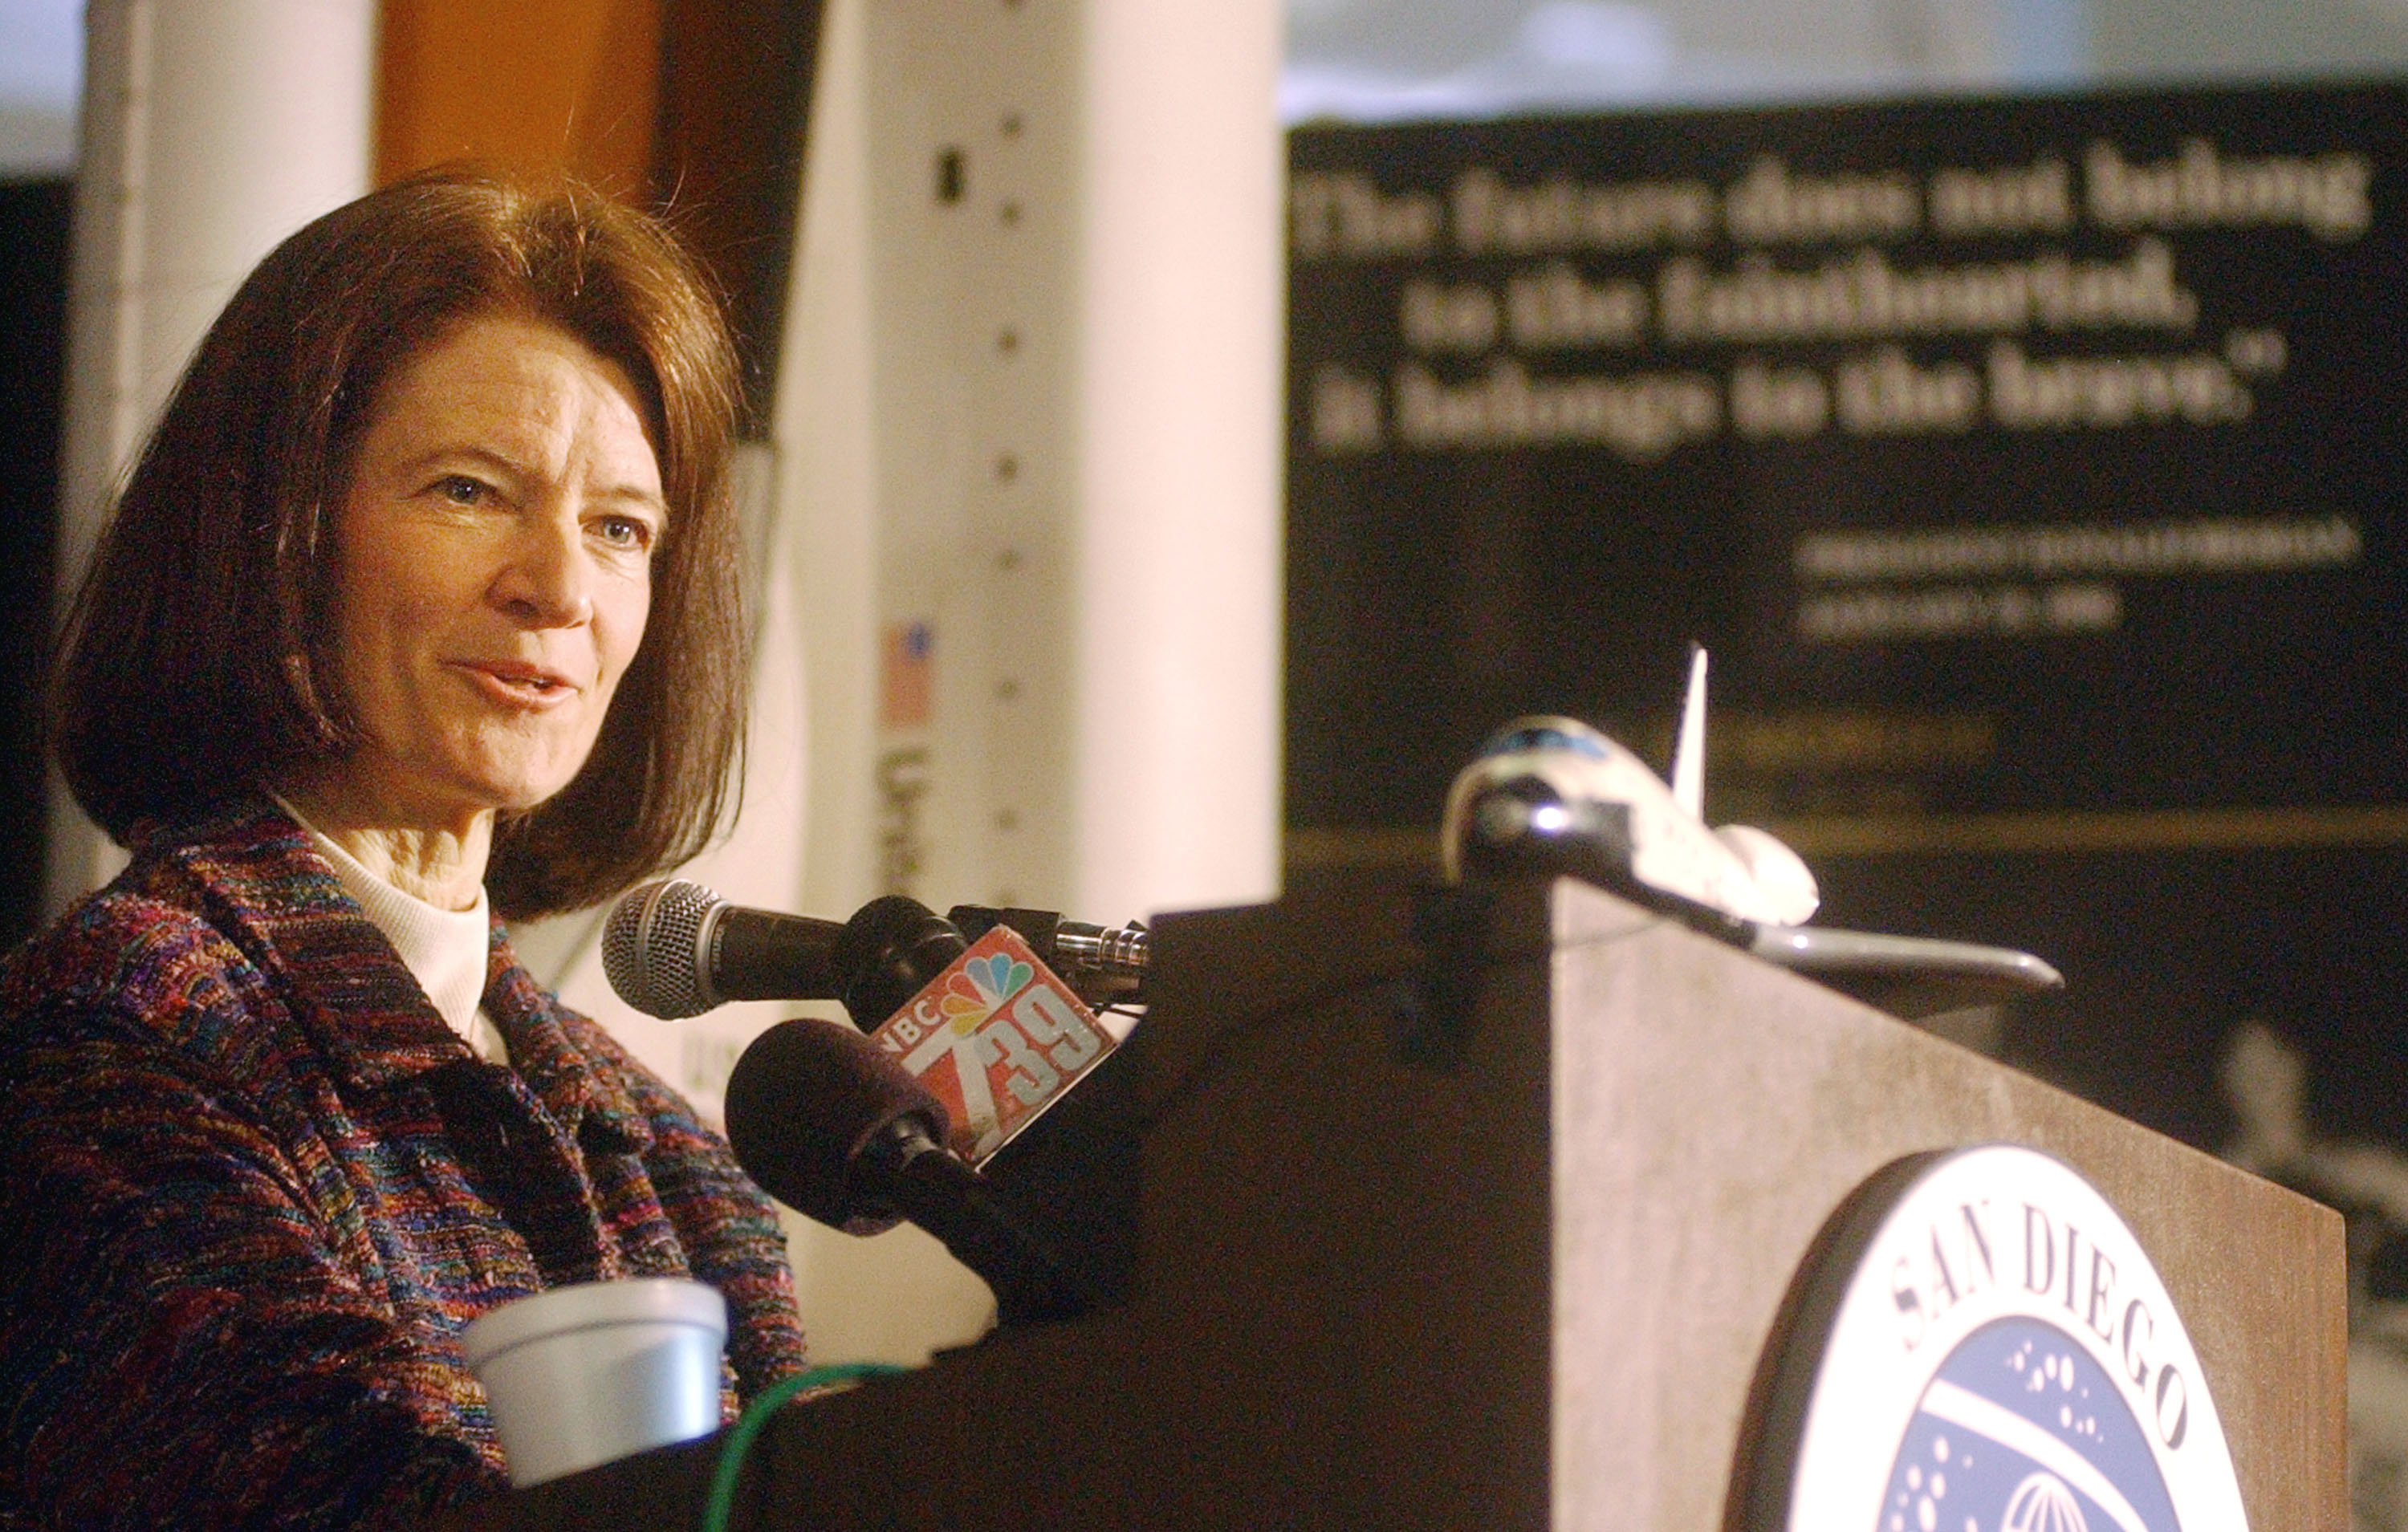 Dr. Sally Ride, the first U.S. woman to travel into space, speaks to the media at the San Diego Aerospace Museum February 7, 2003 in San Diego, California. (Photo by Sandy Huffaker/Getty Images)